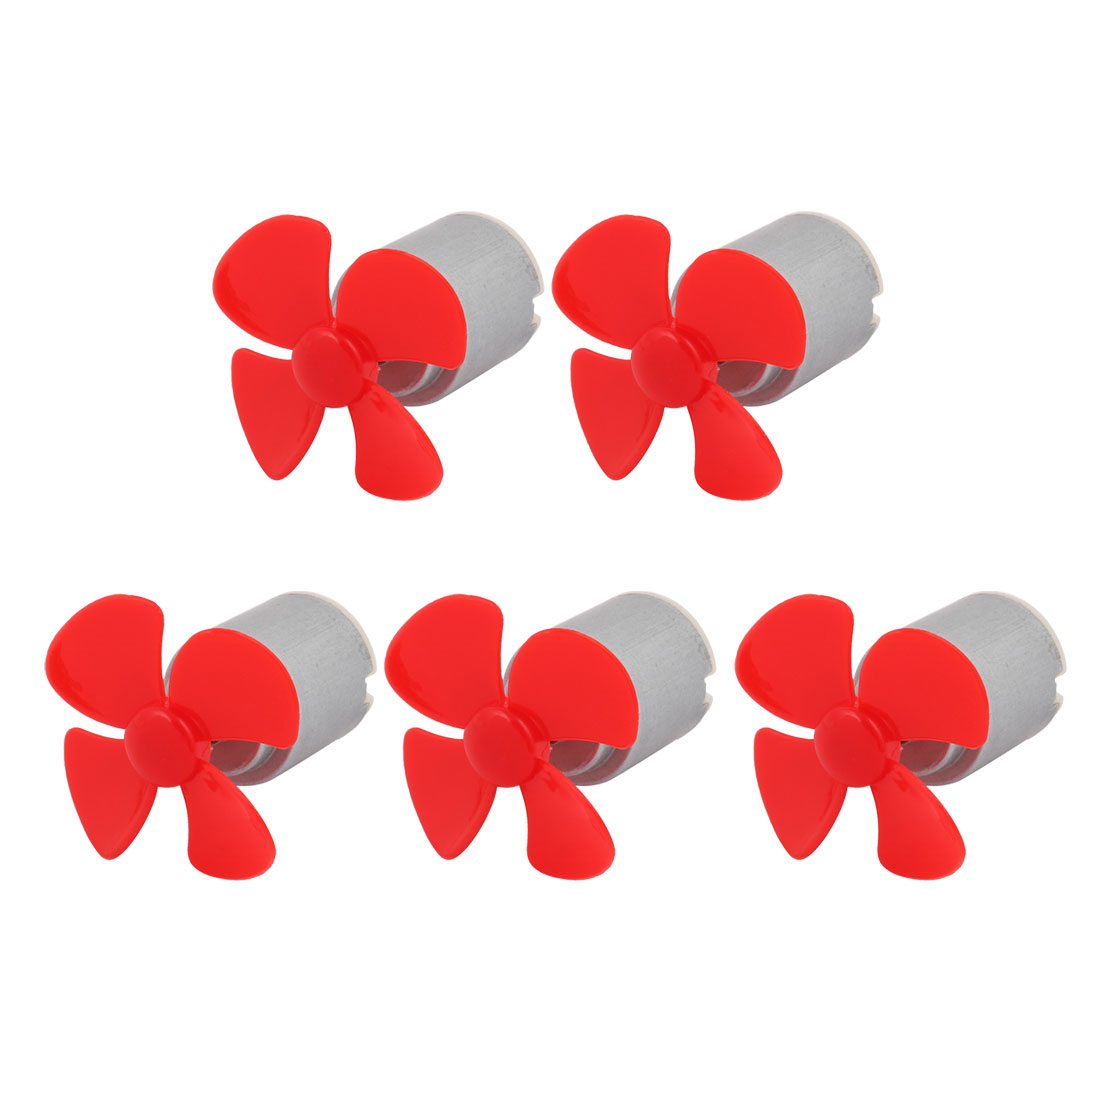 5pcs DC 3V 0.13A 11000RPM Red Strong Force Motor 4 Vanes 40mm Propeller for RC Aircraft